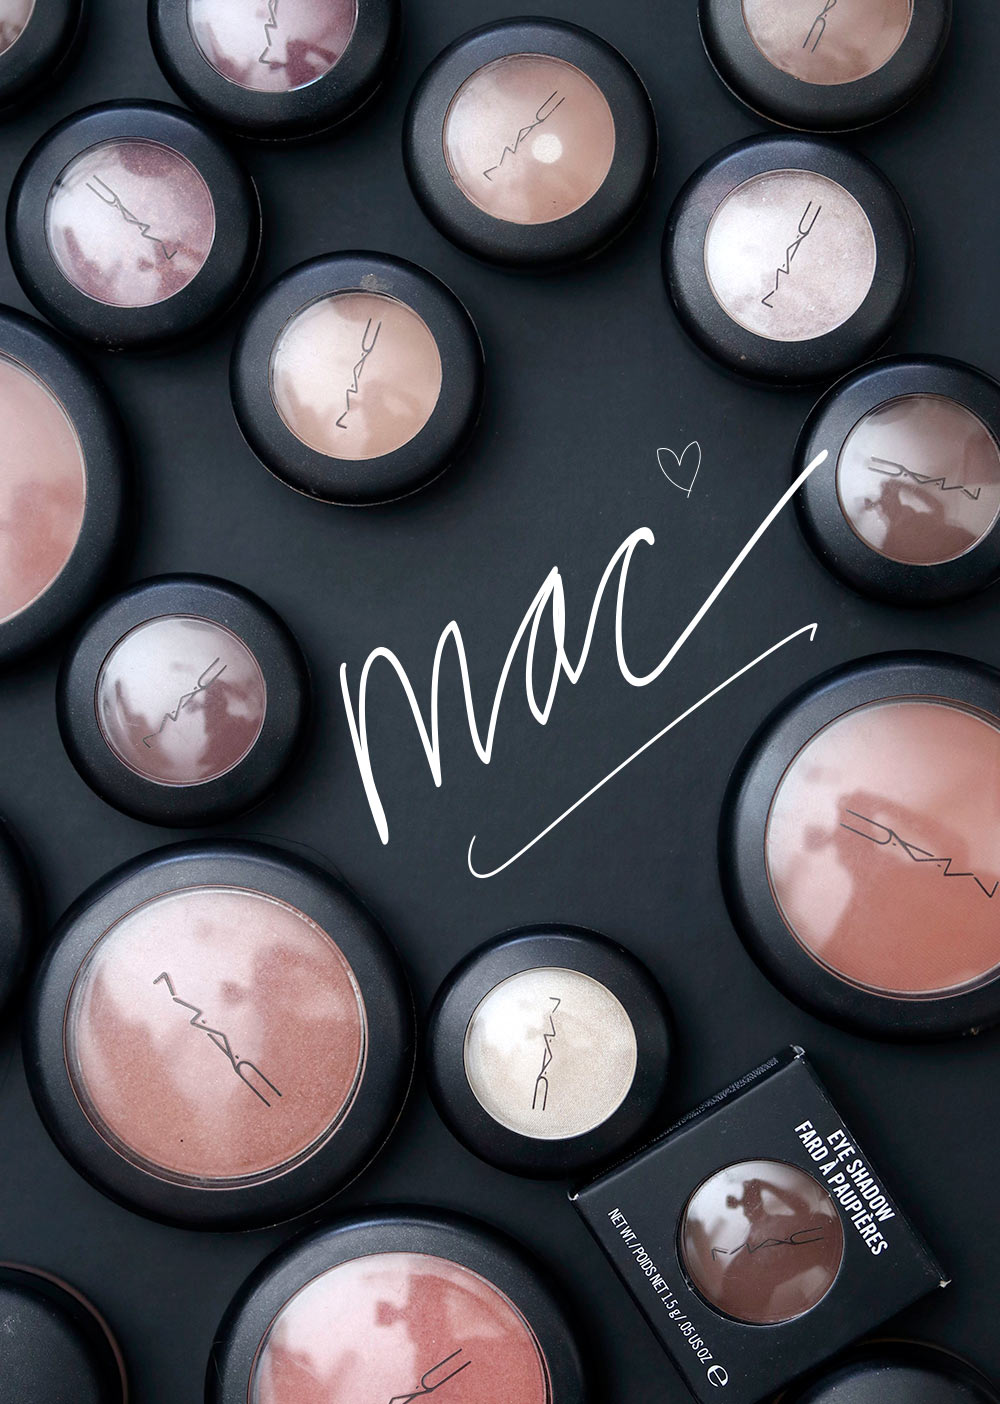 269eaef8e4f Up to 50% Off MAC Cosmetics at Nordstrom Rack - Best Skin ...